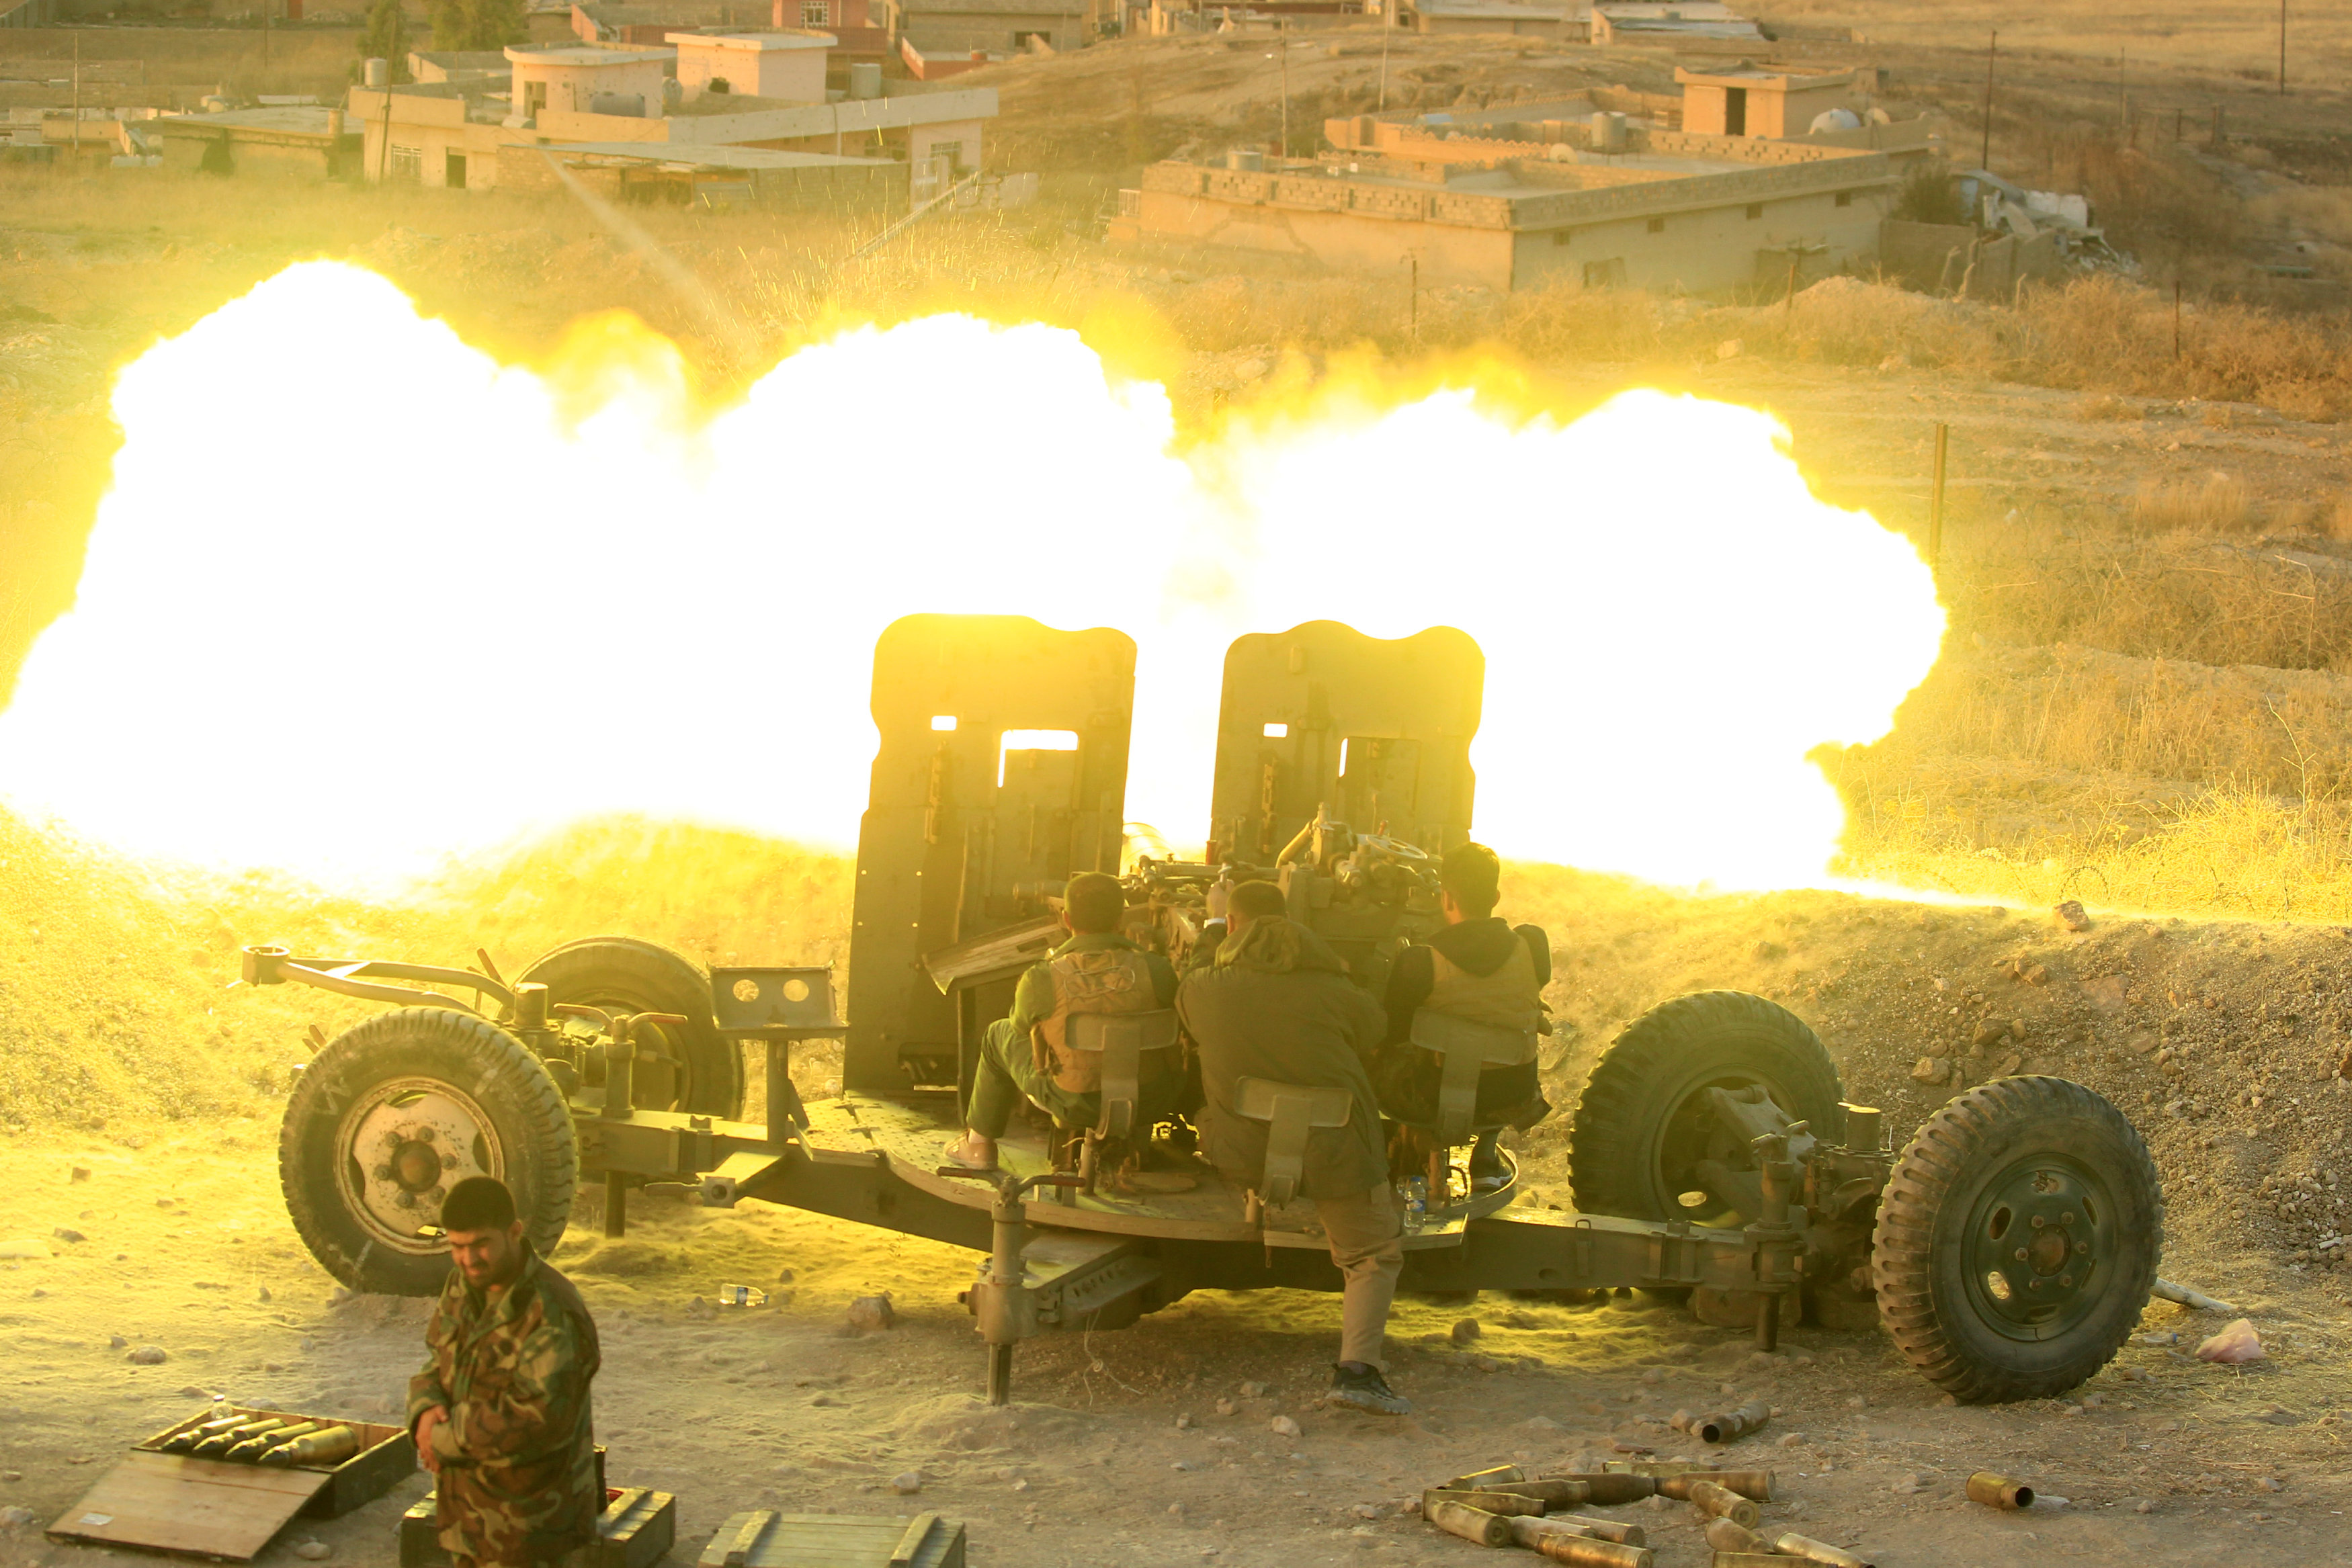 Peshmerga forces fire an anti-aircraft gun towards Islamic state militants positions in the town of Naweran near Mosul, Iraq